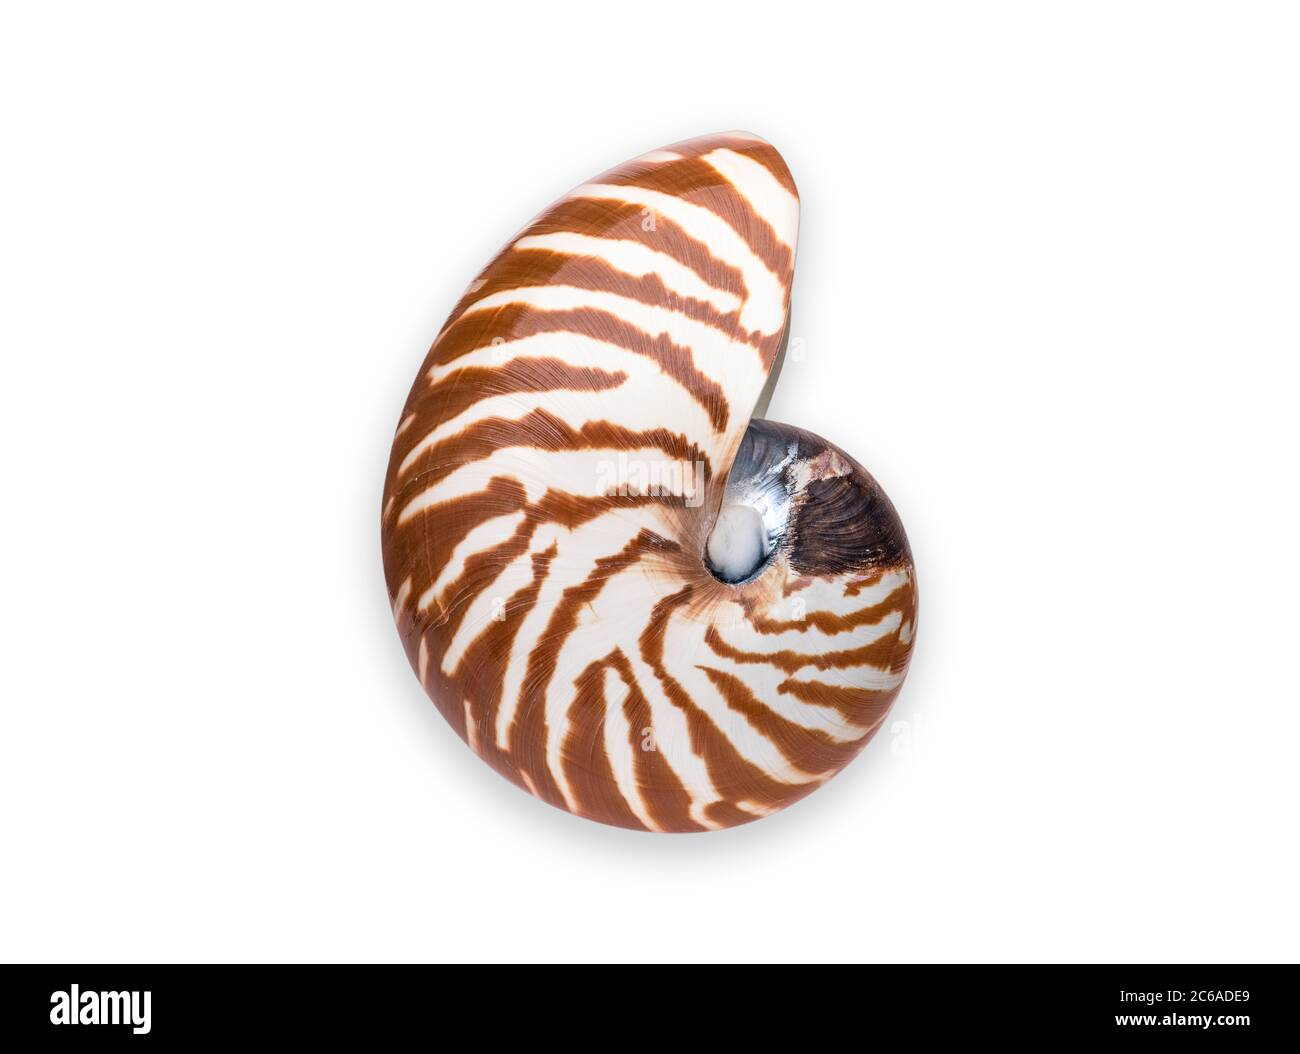 NAUTILUS SHELL or NAUTILUS CHAMBERED or PEARLY NAUTILUS SHELL High Definition Shot Nautilus Pearly Nautilus Shell Clipping Work Path Included in JPEG Stock Photo